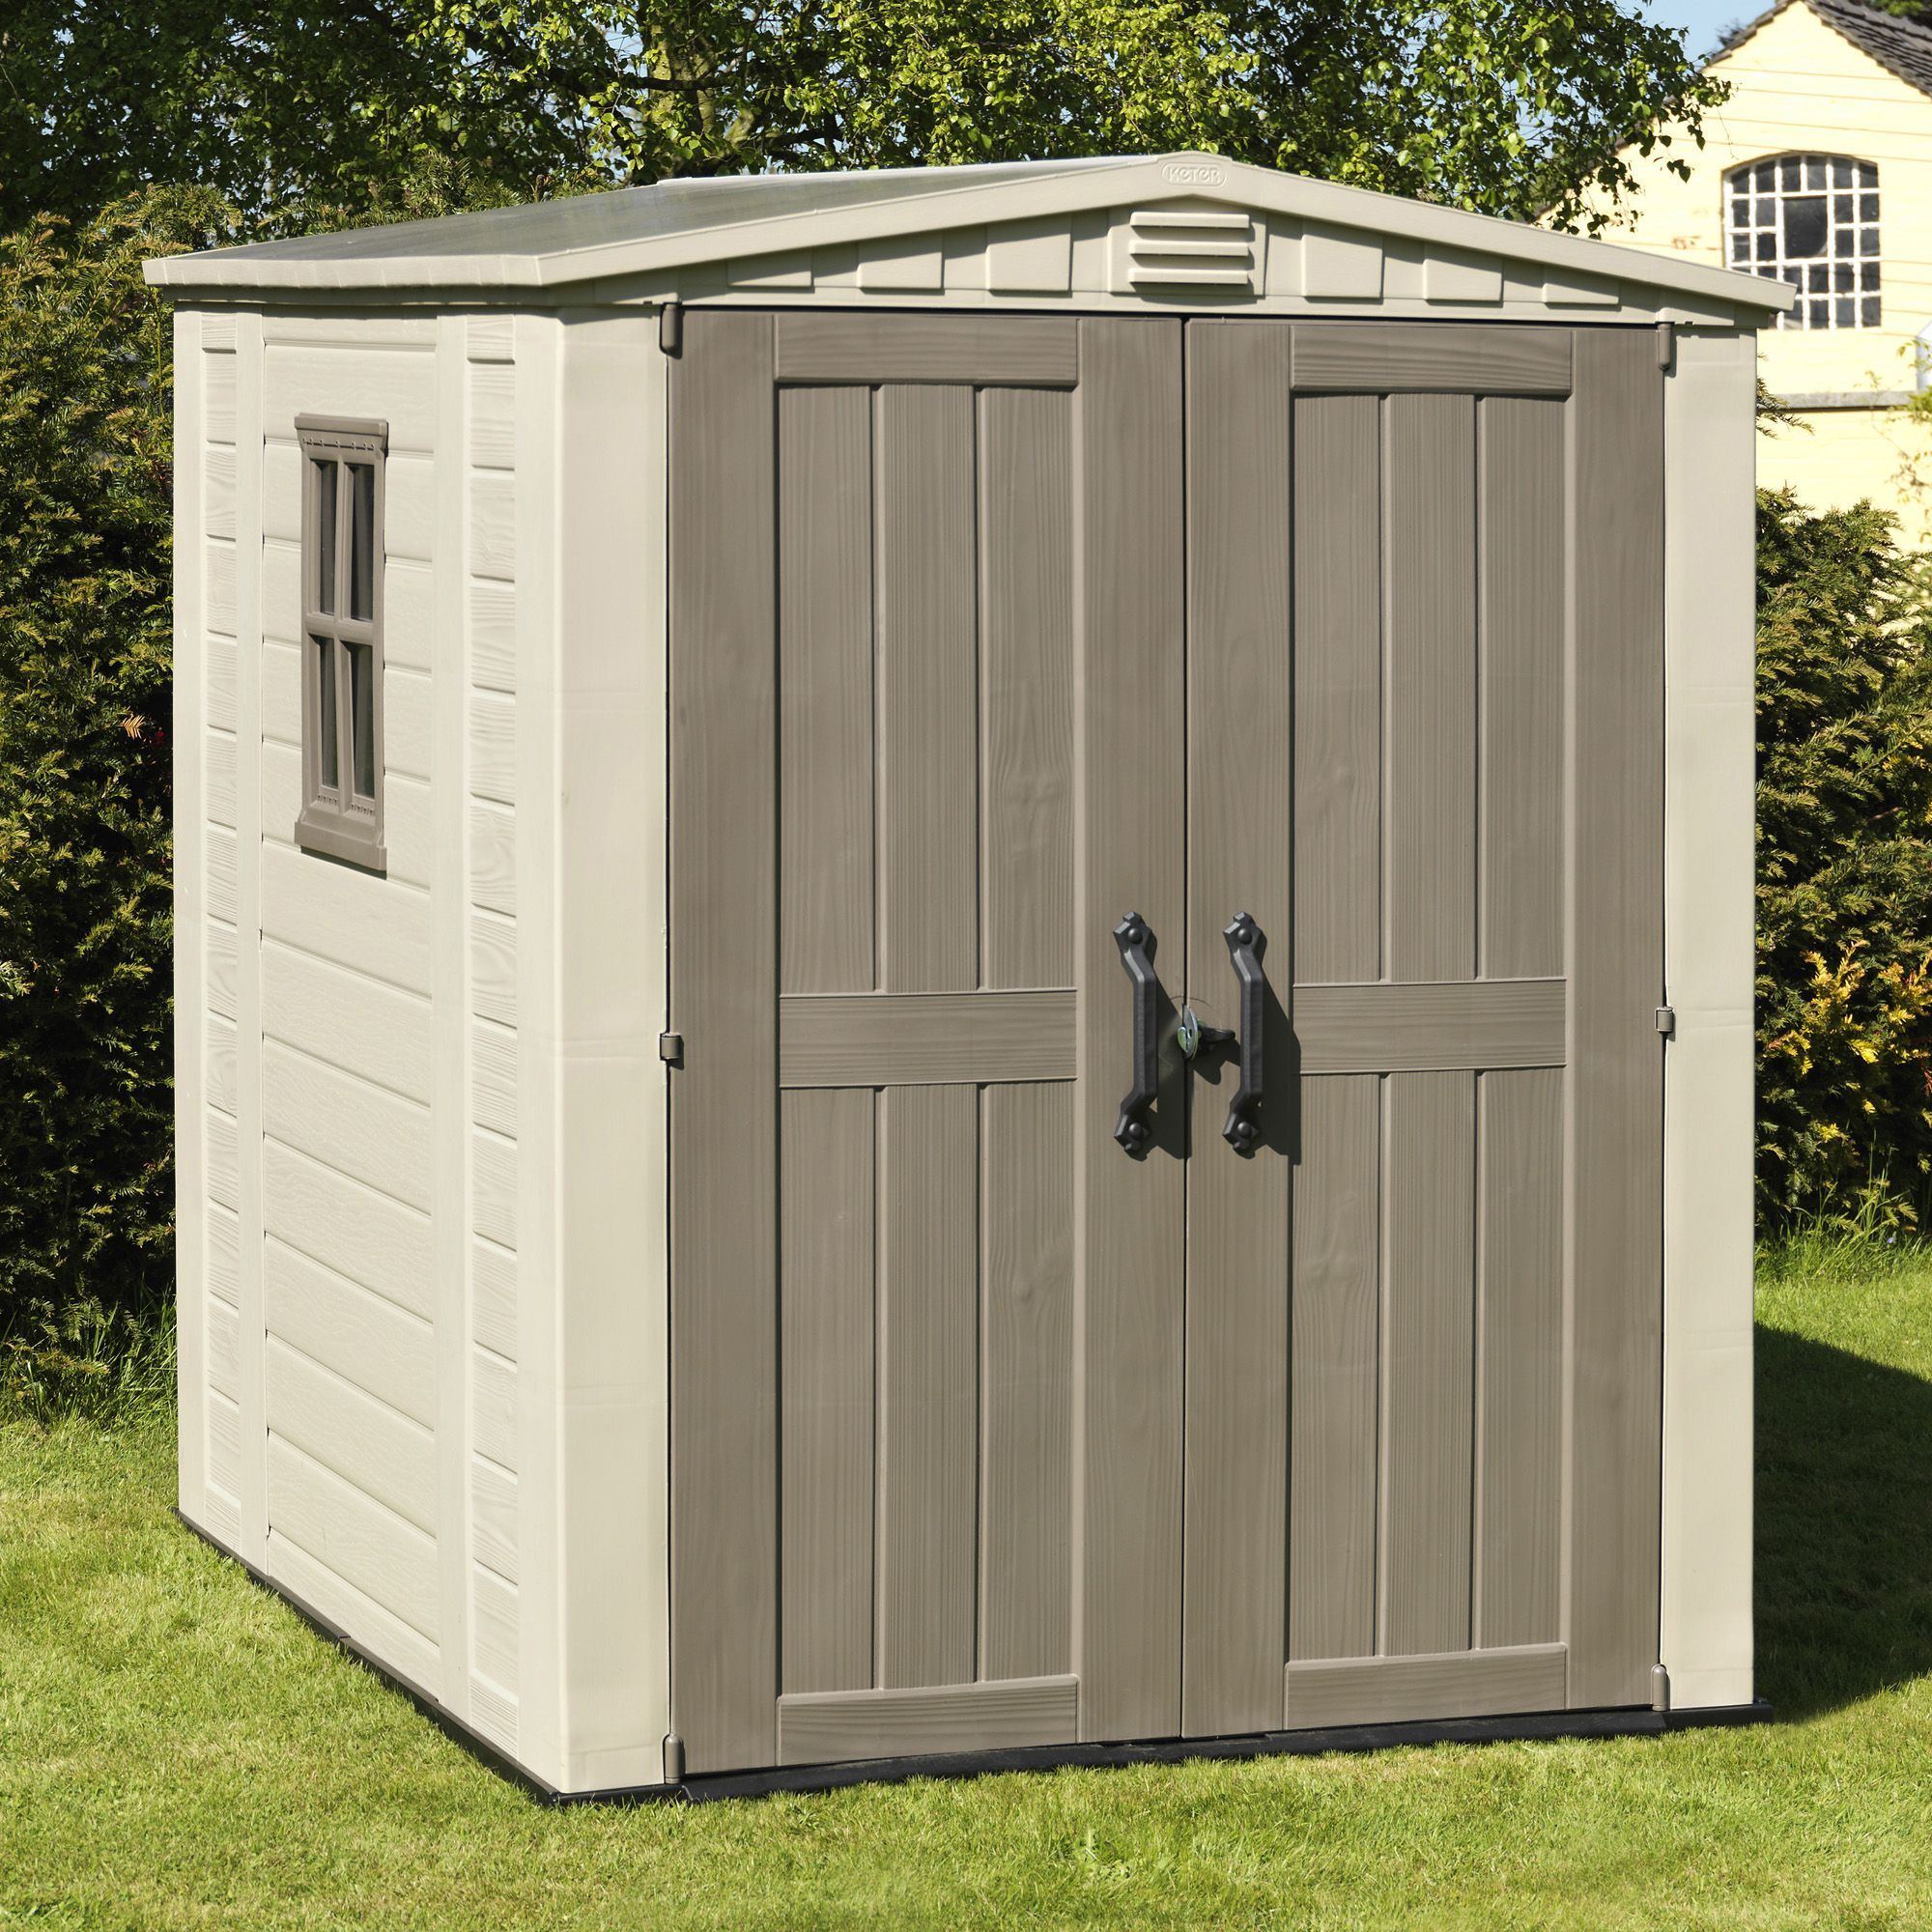 Factor Apex Plastic Shed   Bu0026Q For All Your Home And Garden Supplies And  Advice On All The Latest DIY Trends